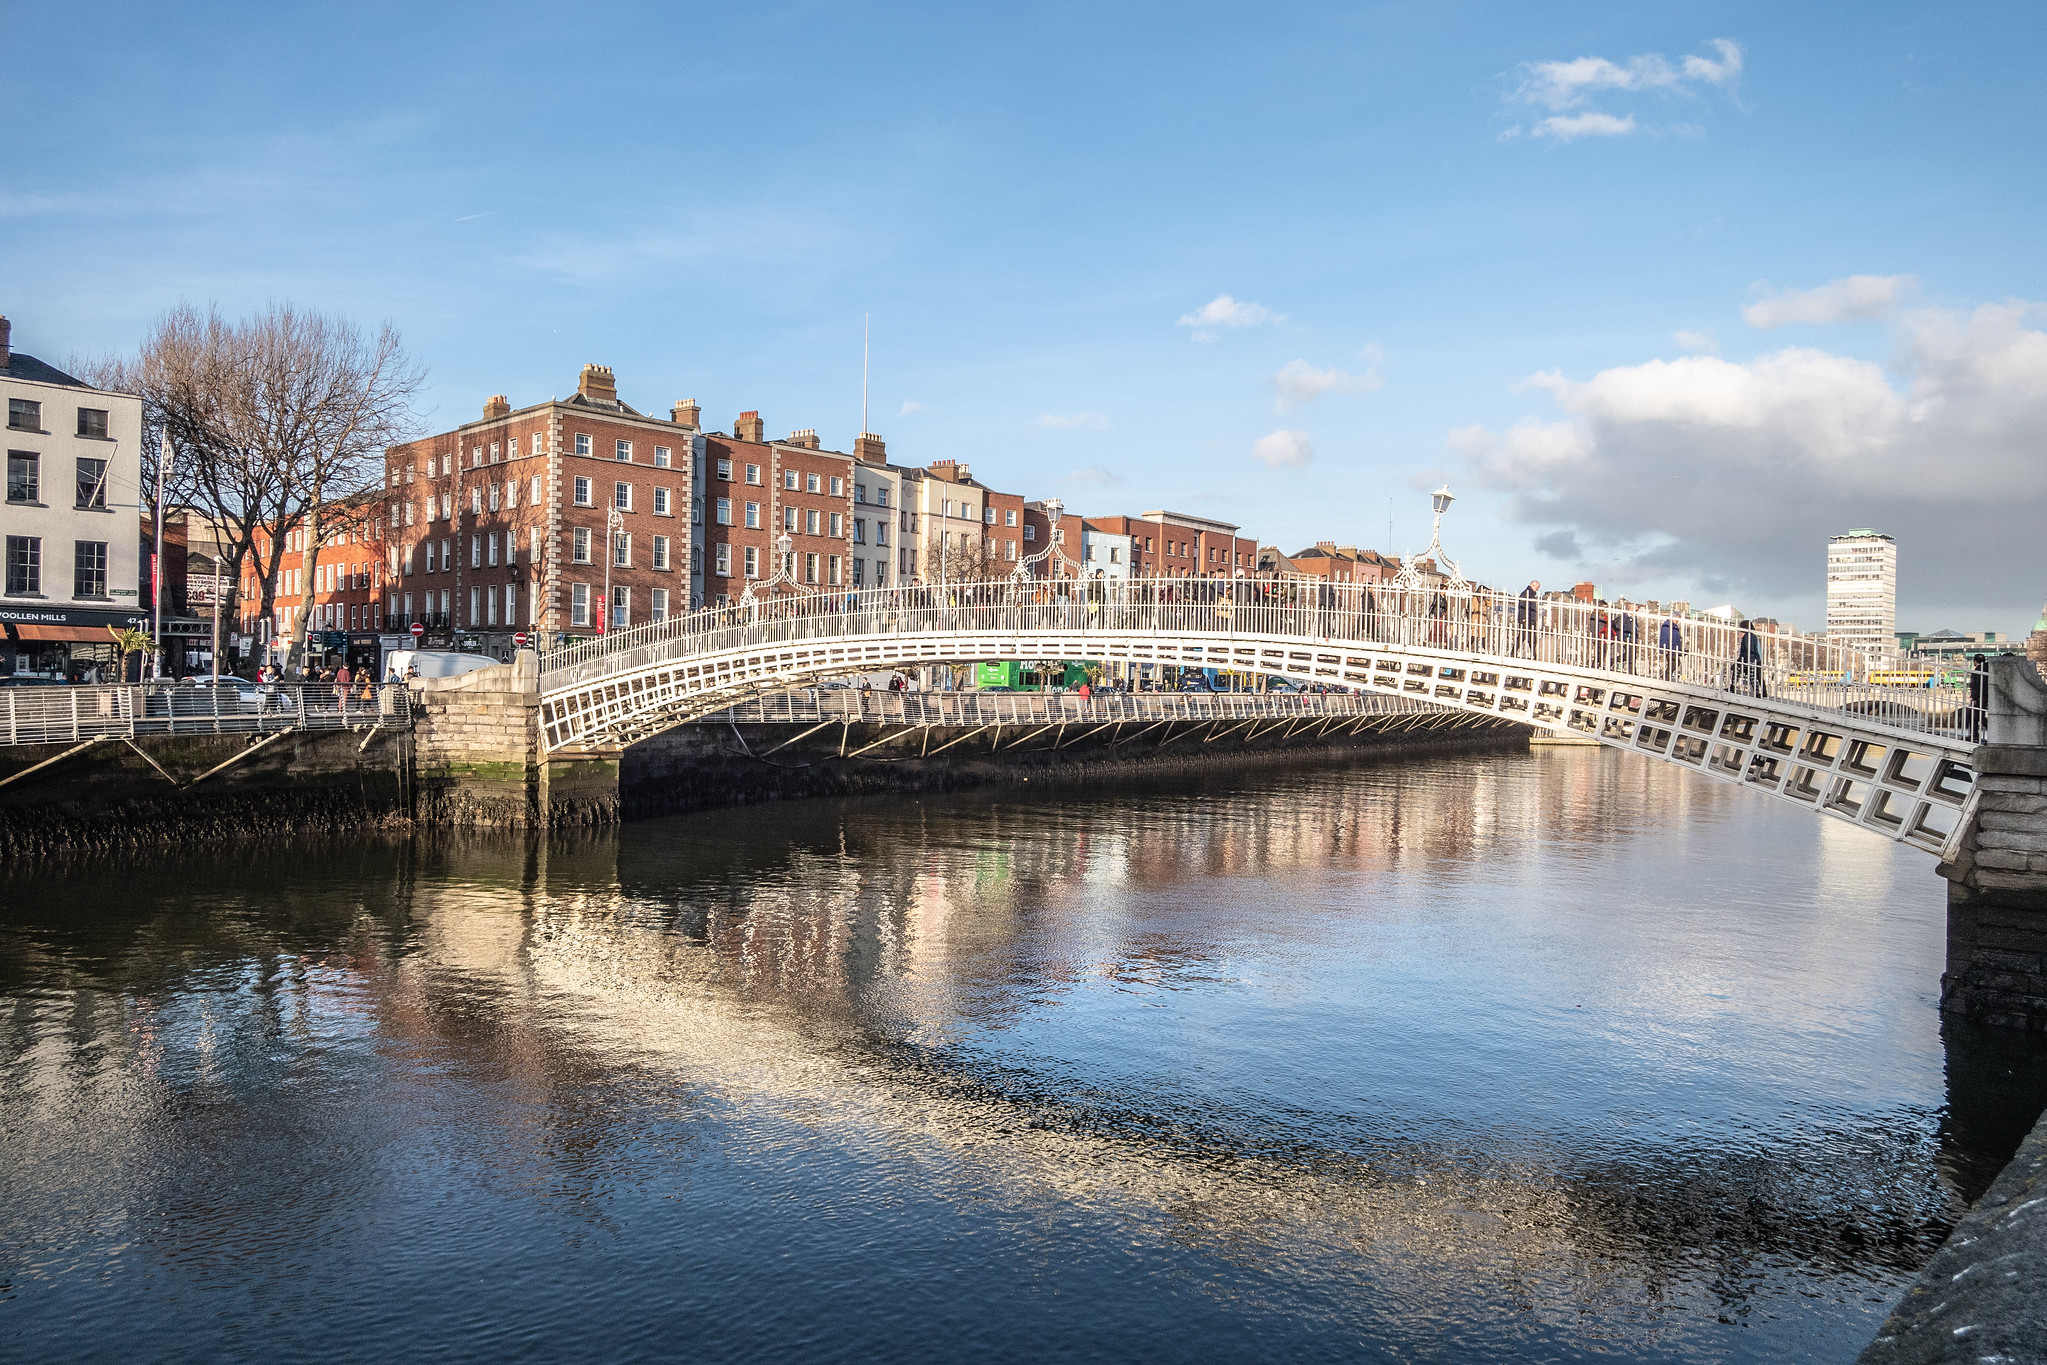 RANDOM IMAGES OF THE RIVER LIFFEY [DUBLIN CITY CENTRE]-149267